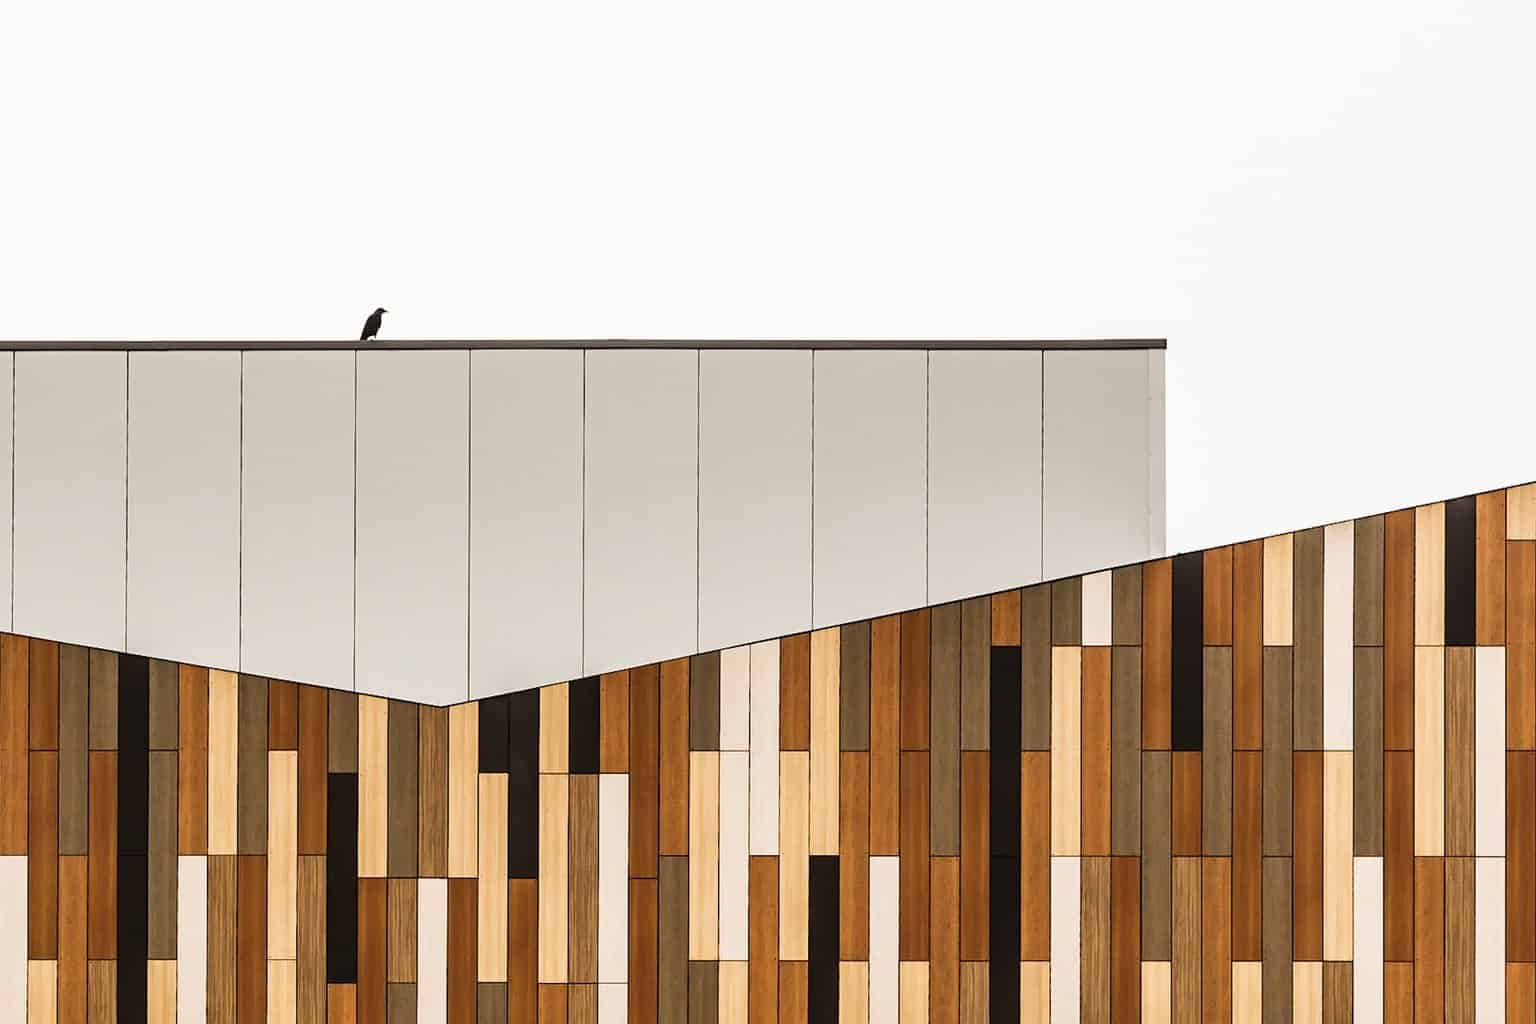 Jigsaw Building at the Royal Bournemouth and Christchurch Hospital by architectural photographer Rick McEvoy